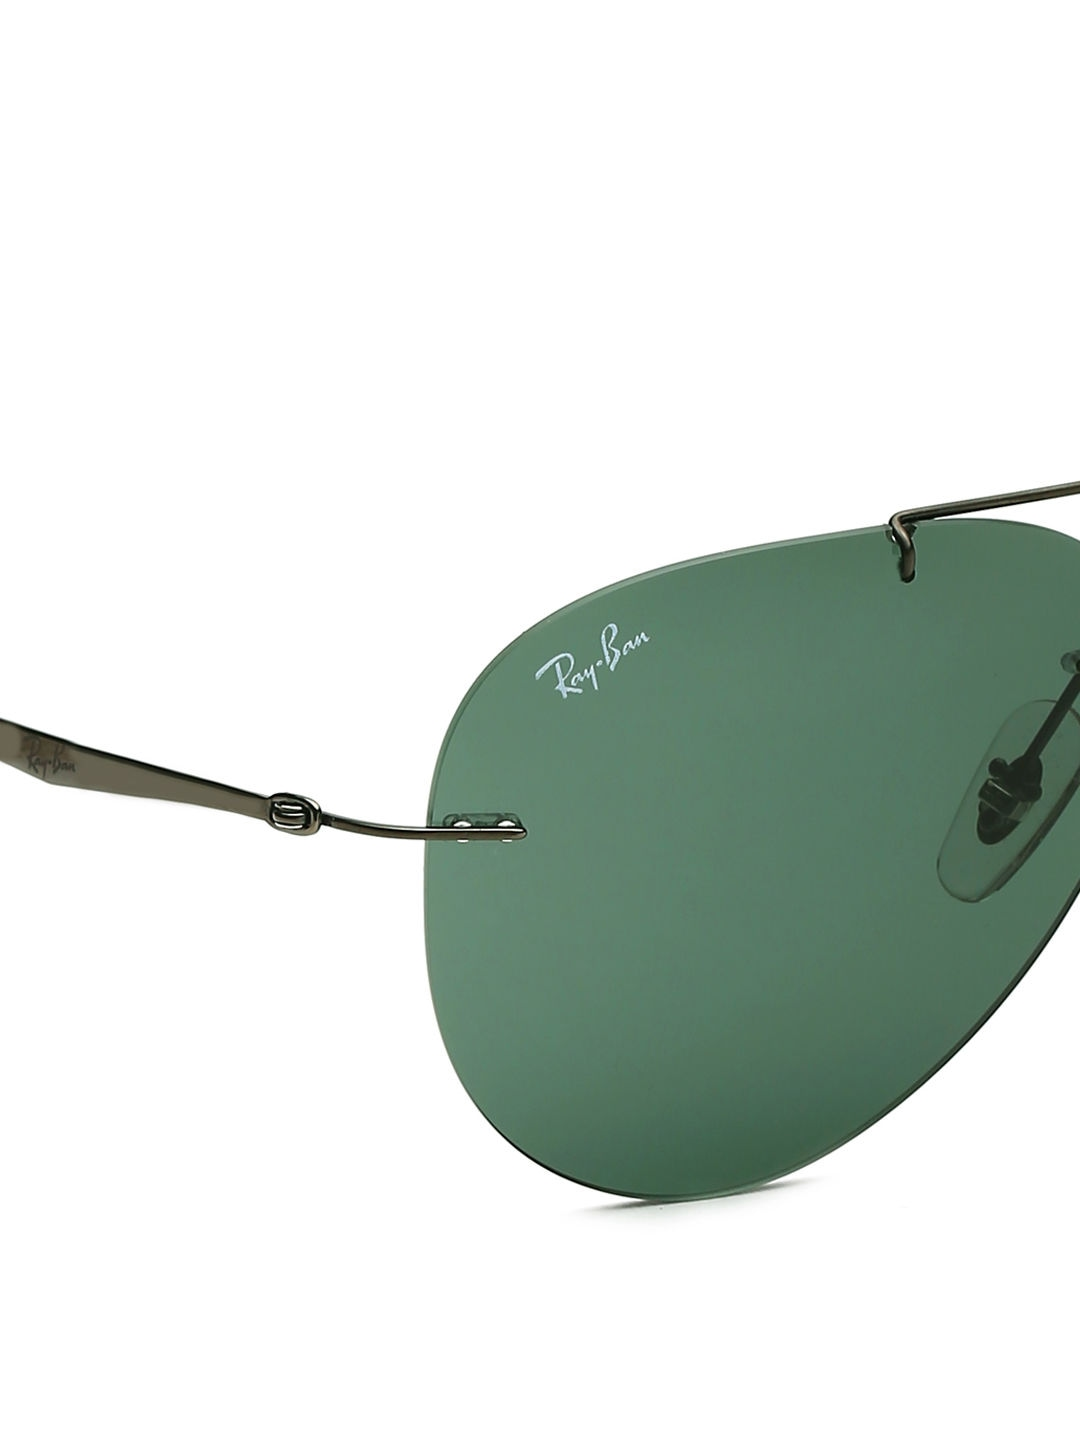 906a065e63 How To Adjust Ray Ban Plastic Frames « Heritage Malta